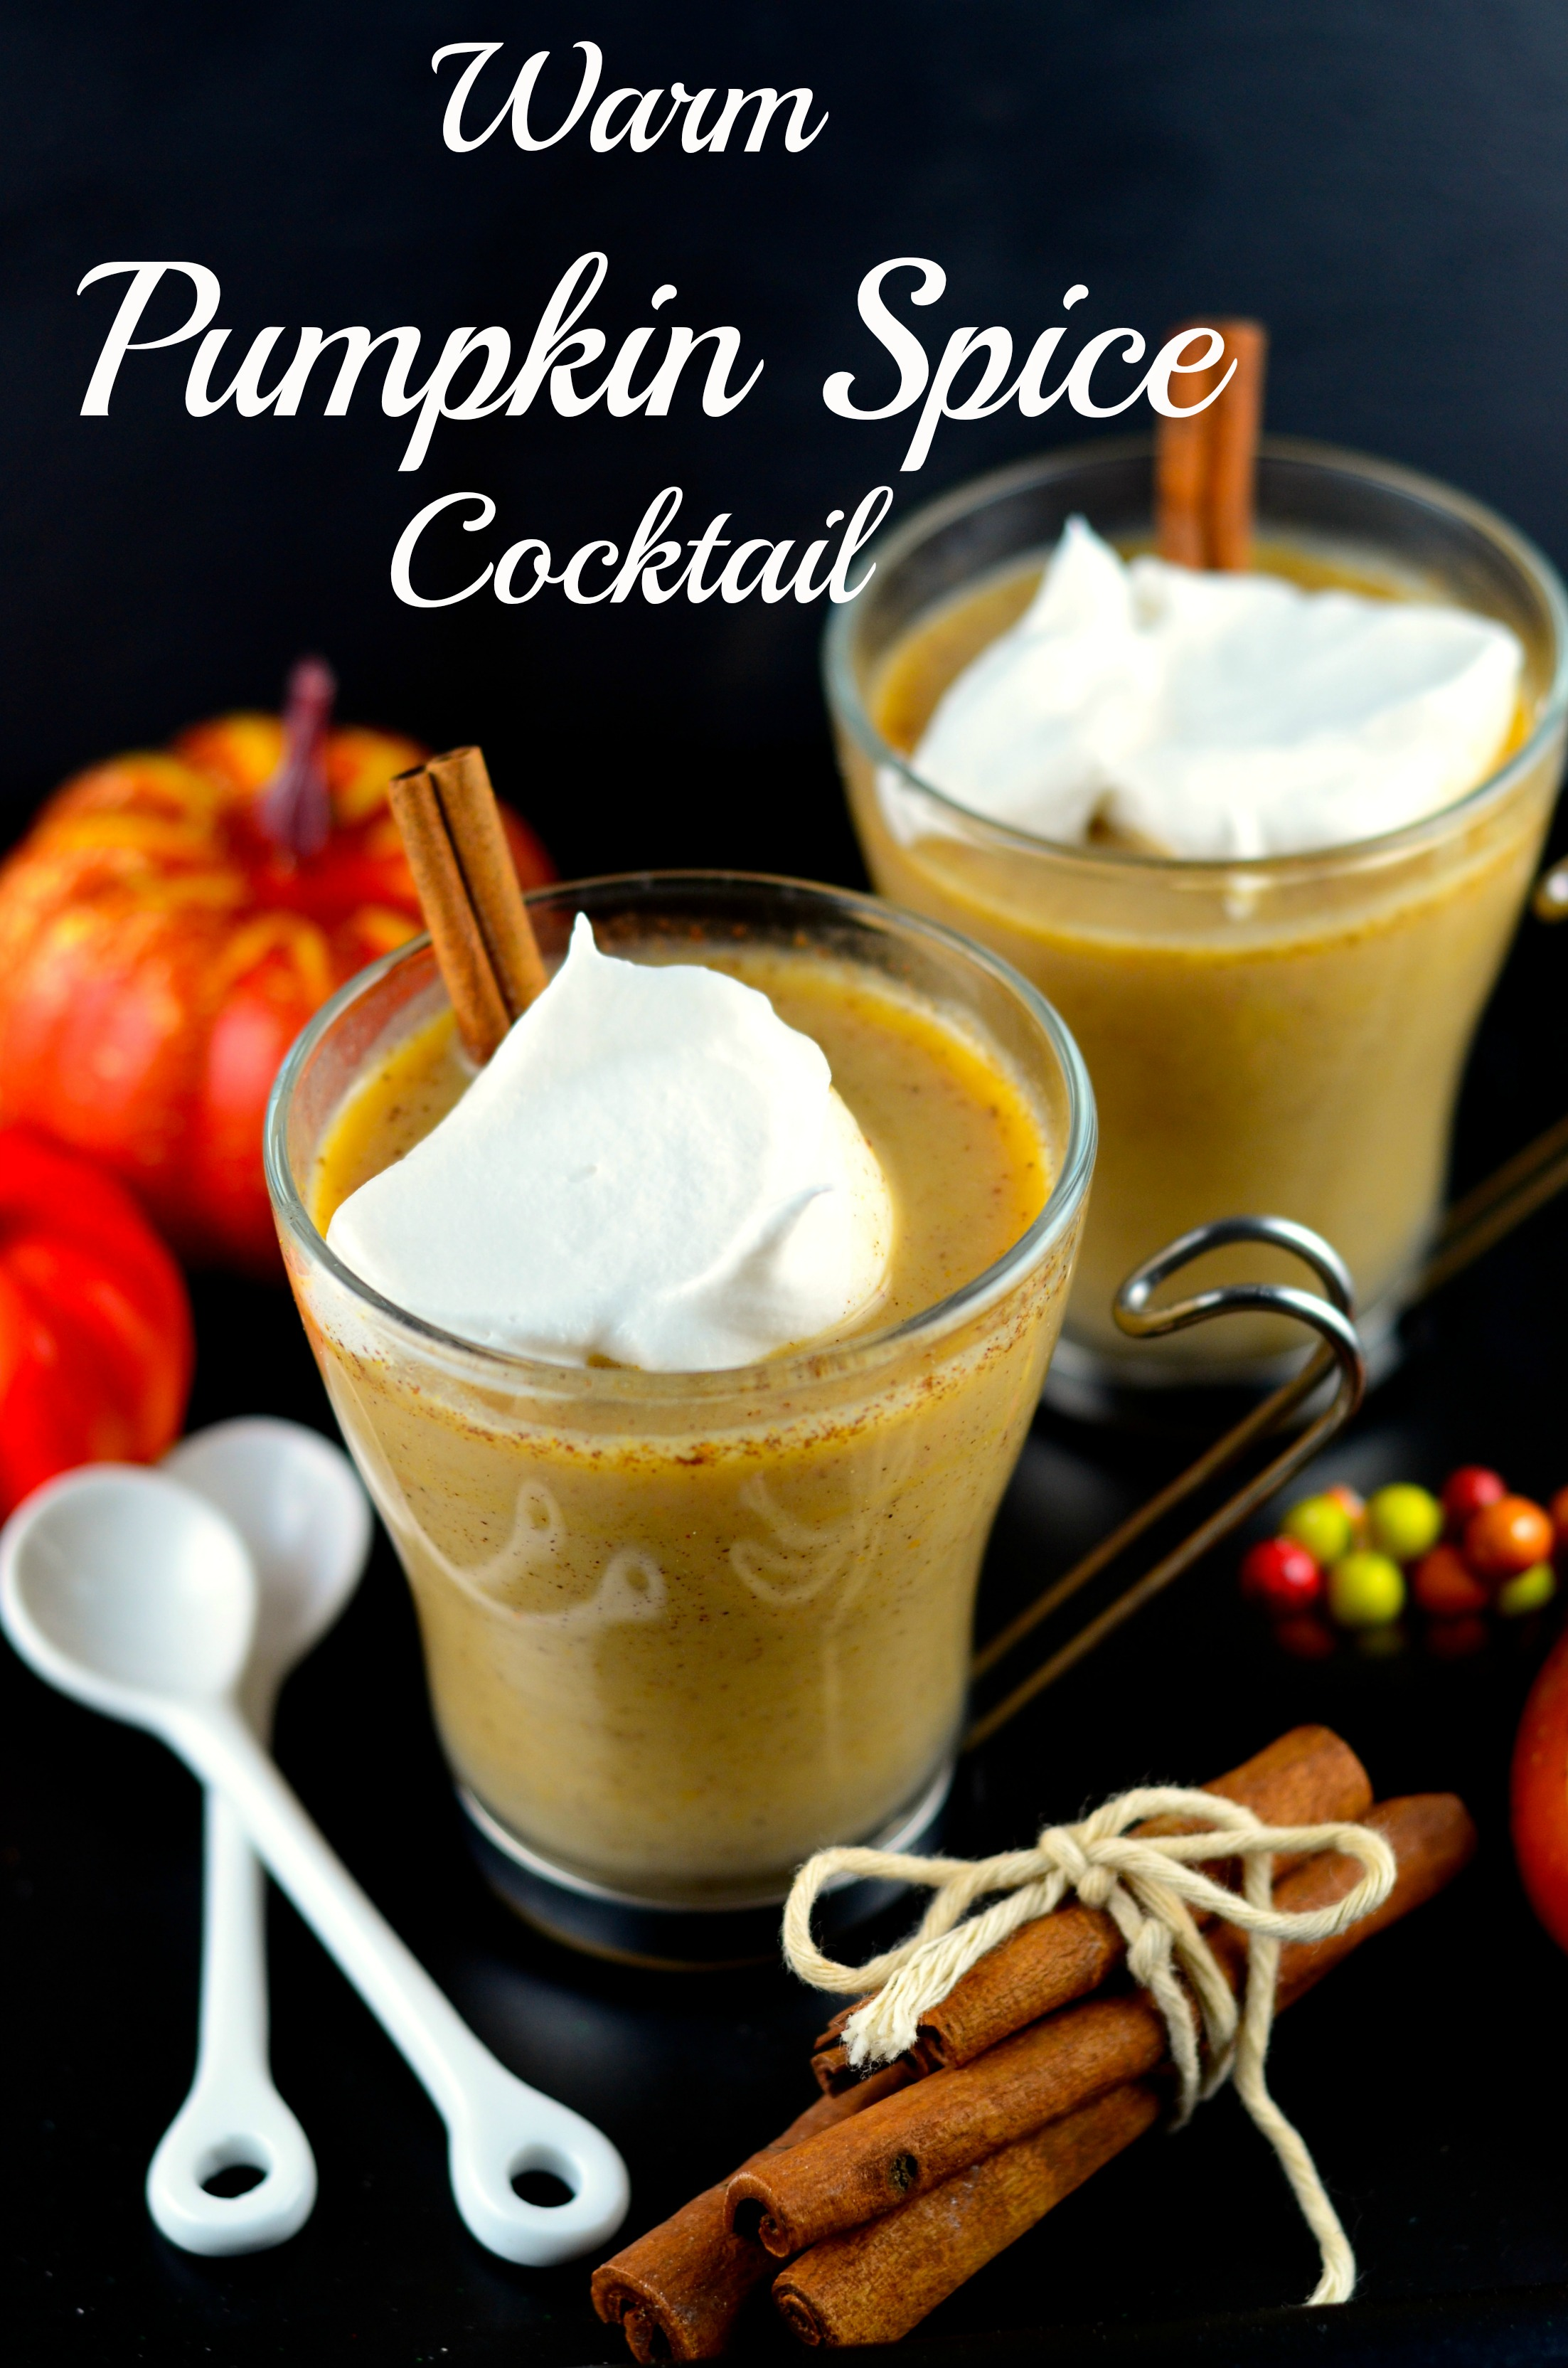 Warm Pumpkin Spice Cocktail